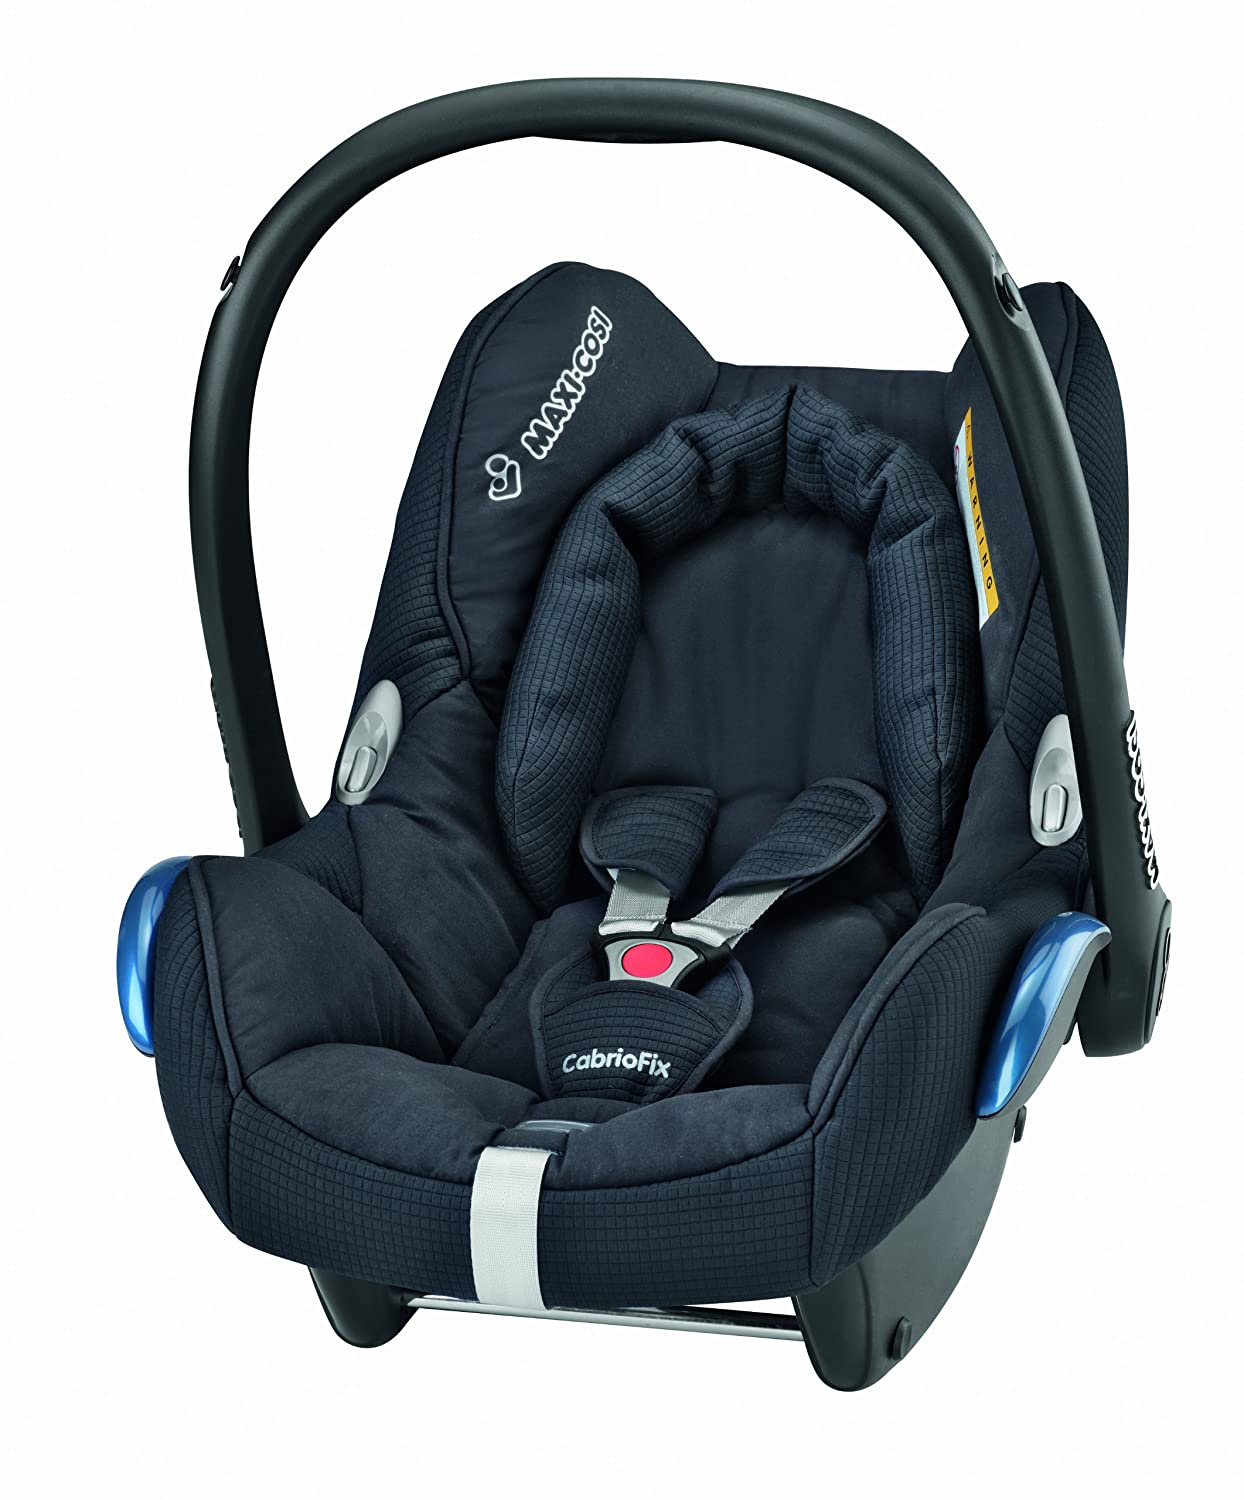 maxi cosi cabriofix group 0 baby car seat total black. Black Bedroom Furniture Sets. Home Design Ideas